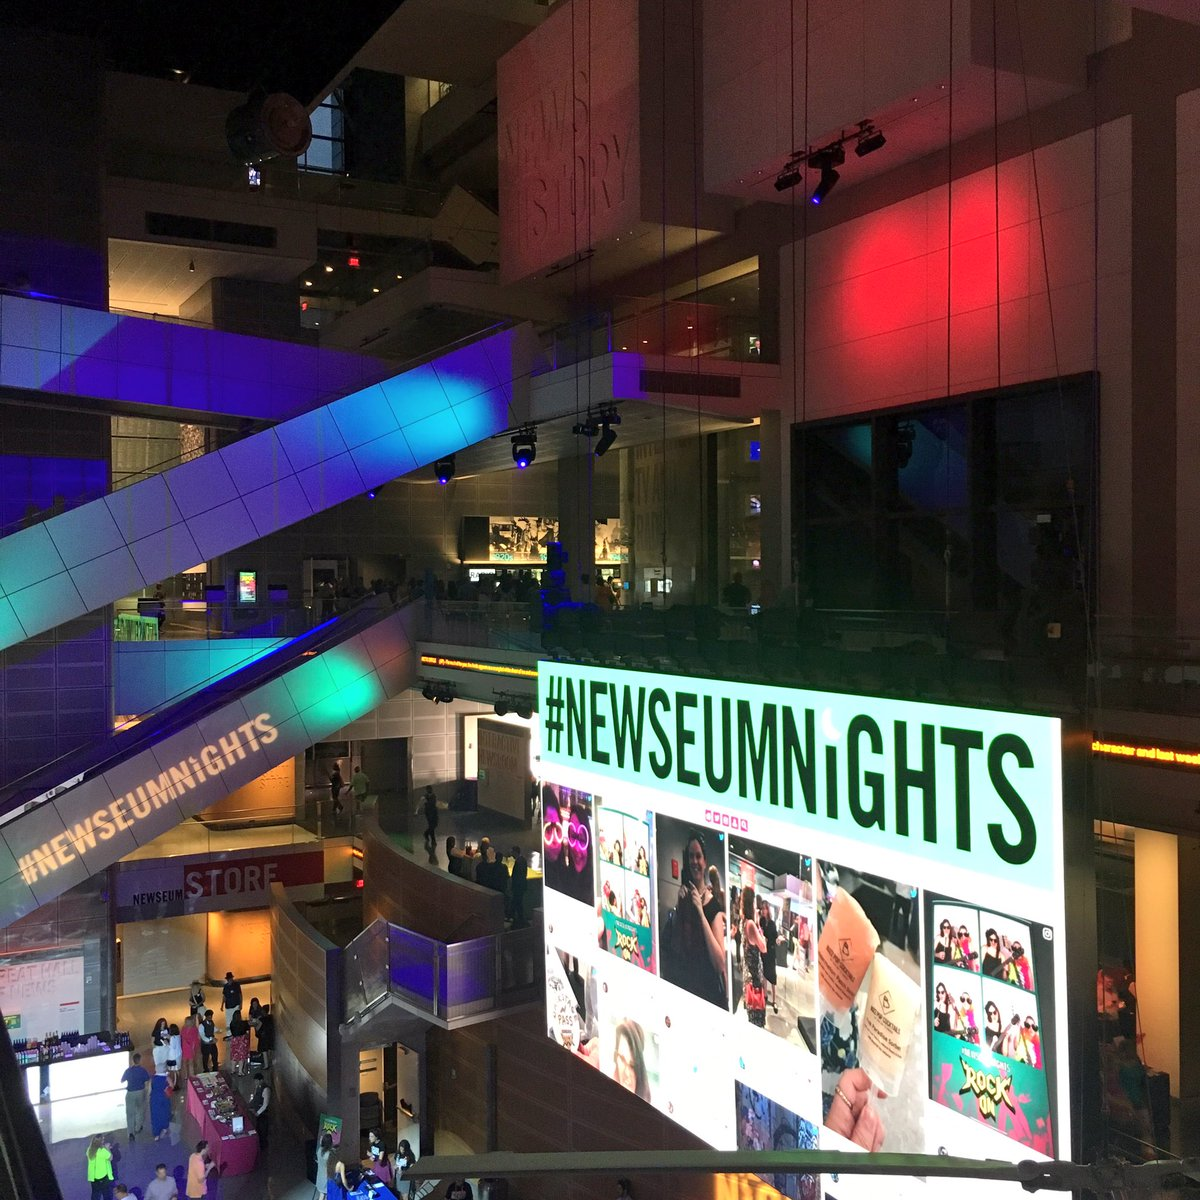 Tag #NewseumNights on Twitter or Instagram to get up on the big screen in the atrium!